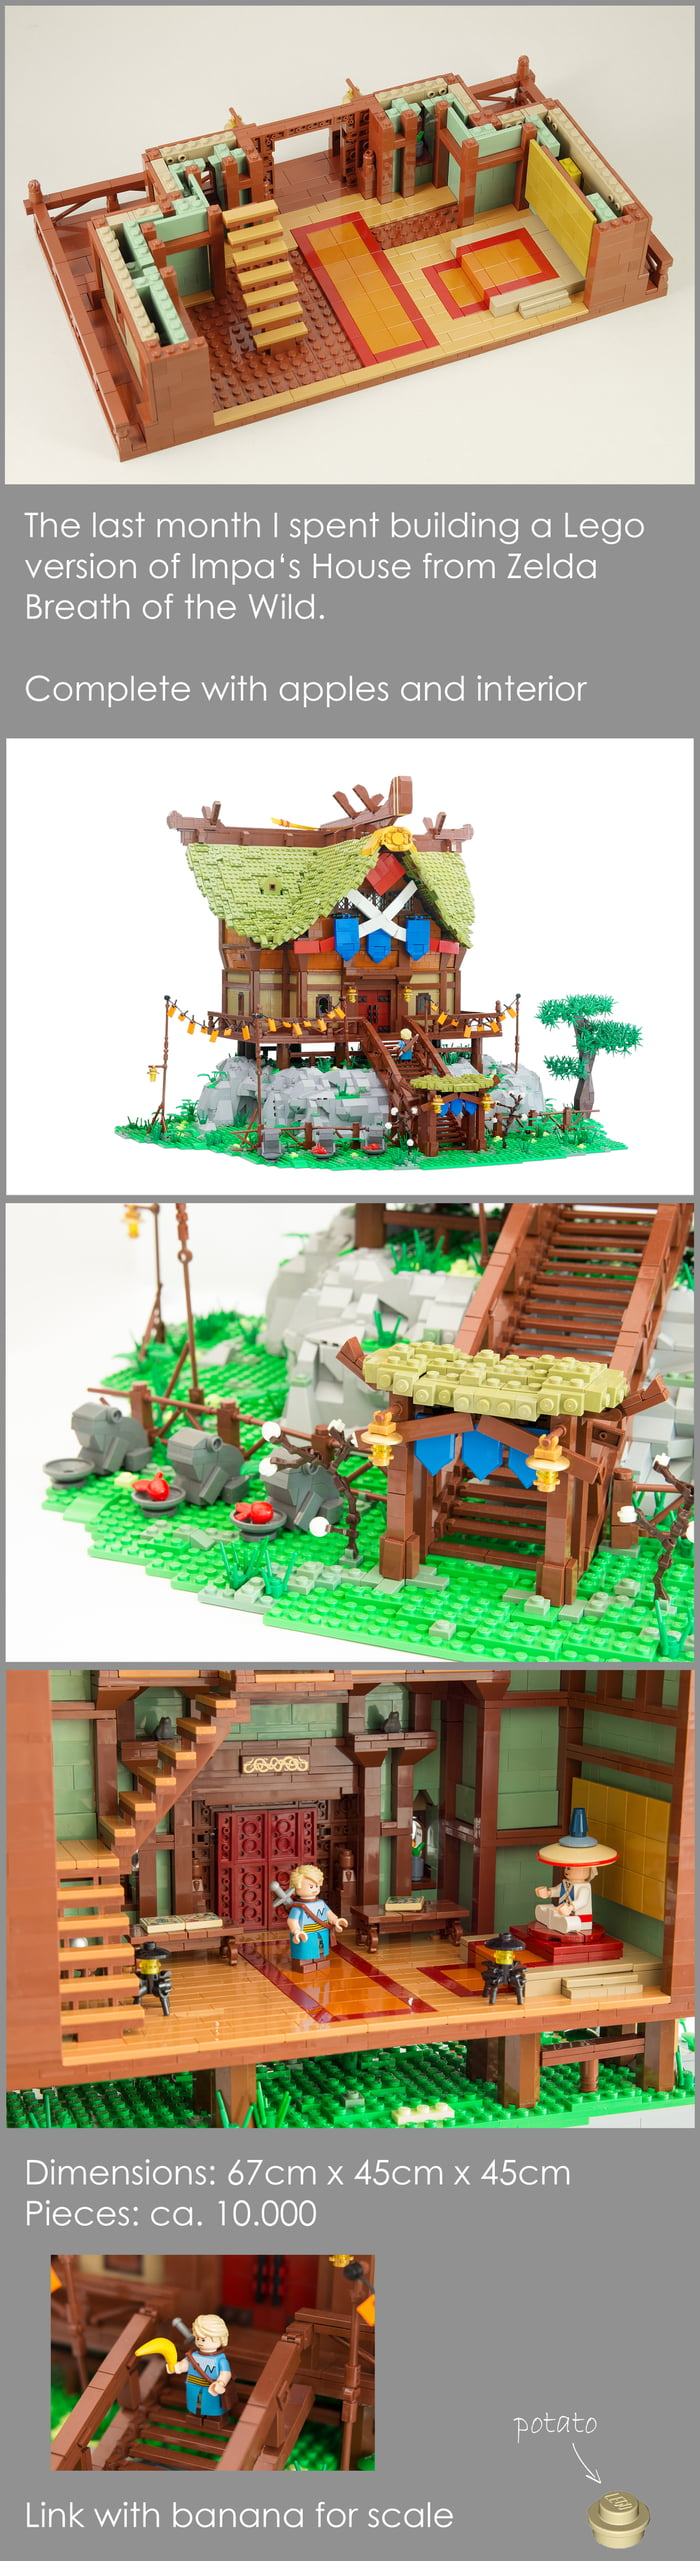 I built a Lego version of Impa's House from Zelda